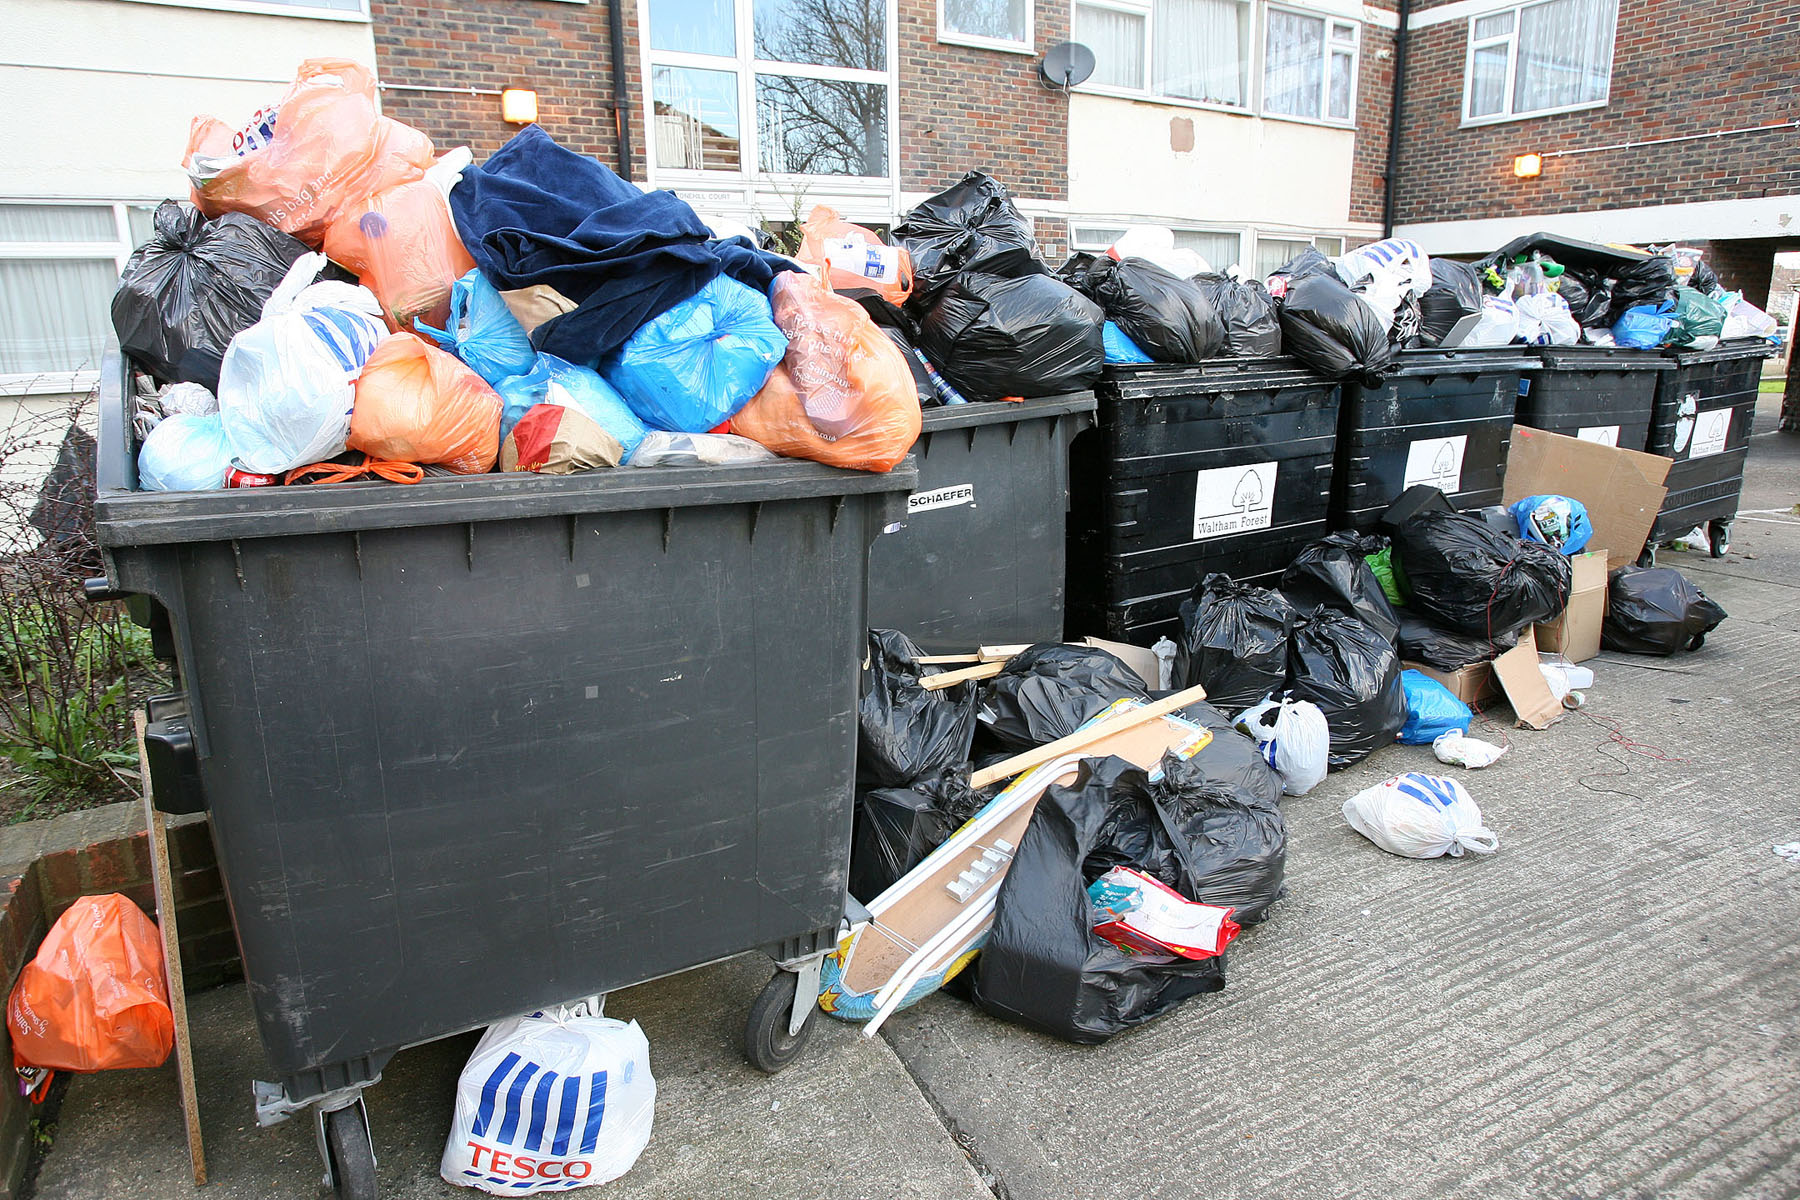 Rubbish will be collected a week late for some households in Thurrock but the council is unable to say which